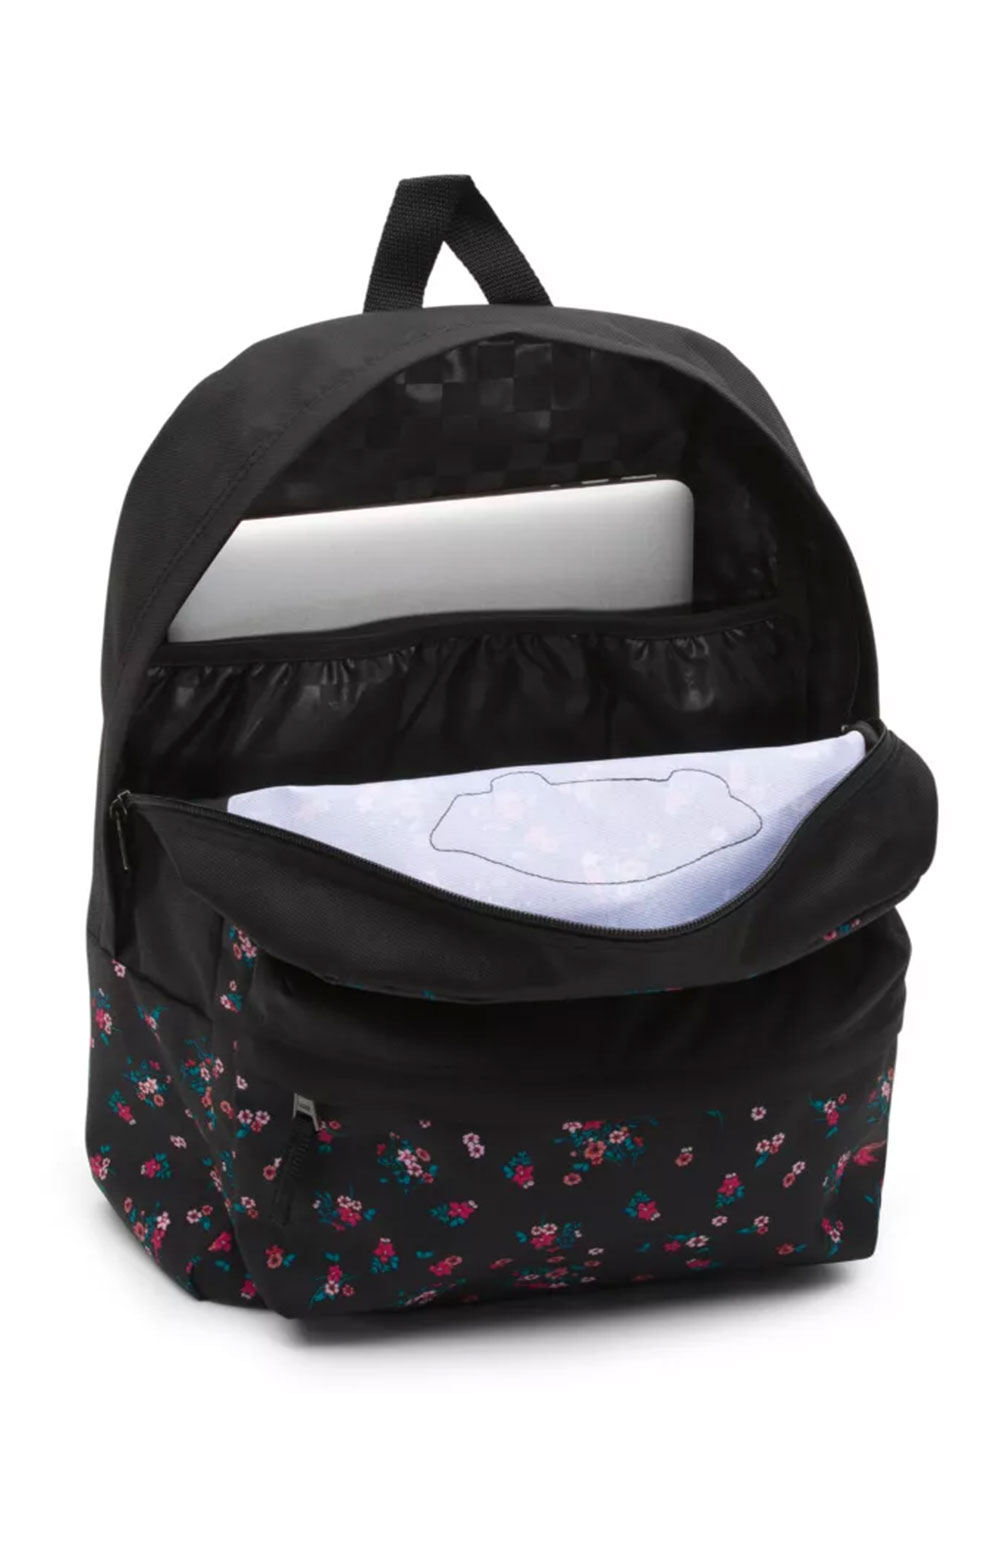 Realm Backpack - BeautyFloral 2